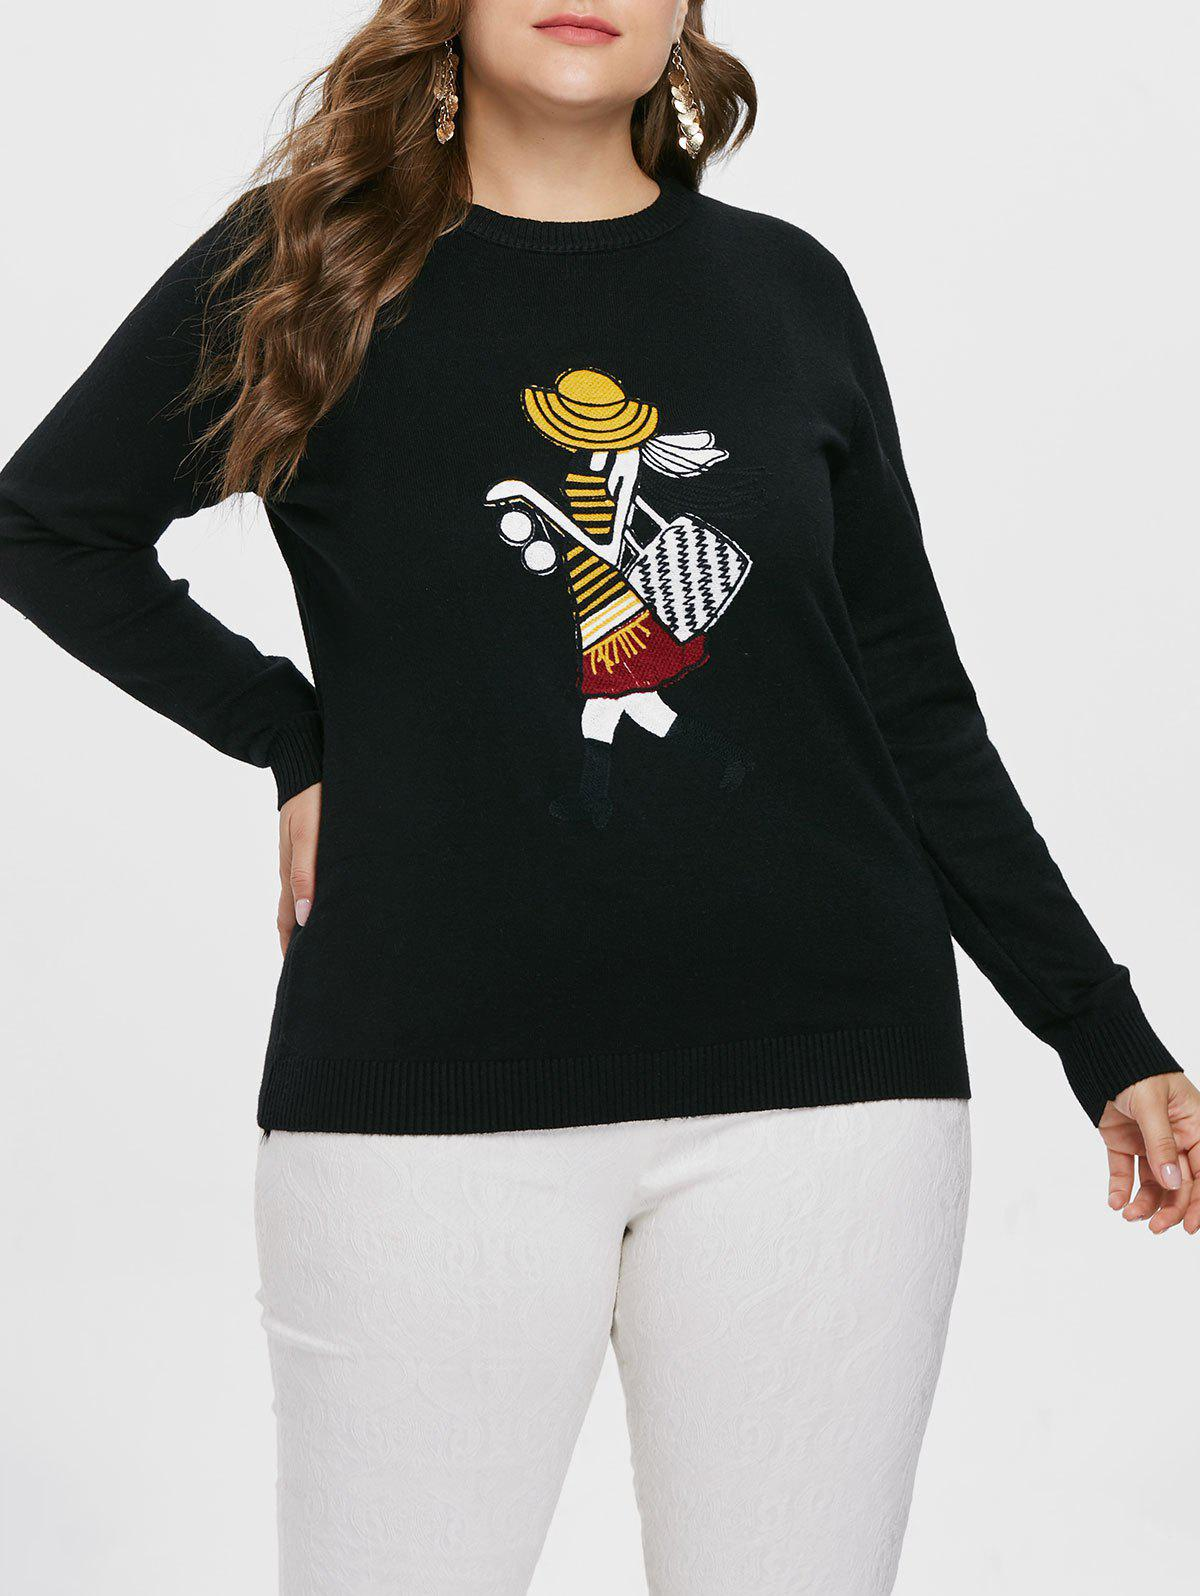 Plus Size Fitted Graphic Sweater